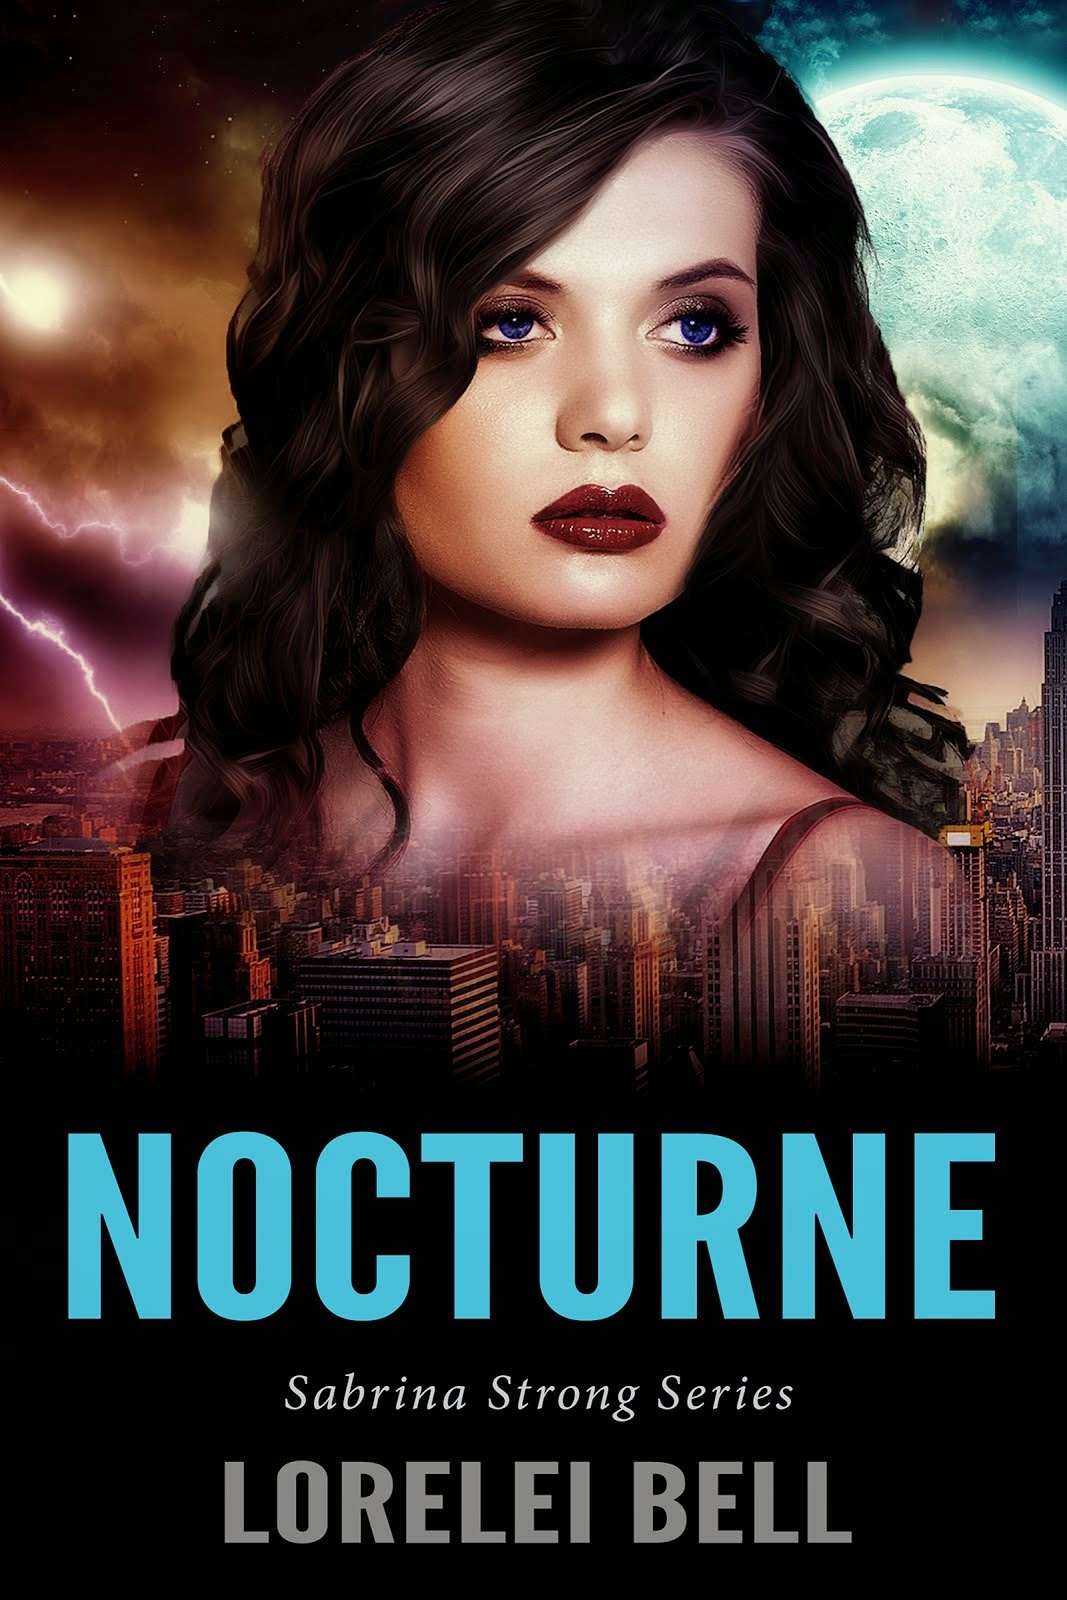 Nocturne ~ available in paperback and ebook